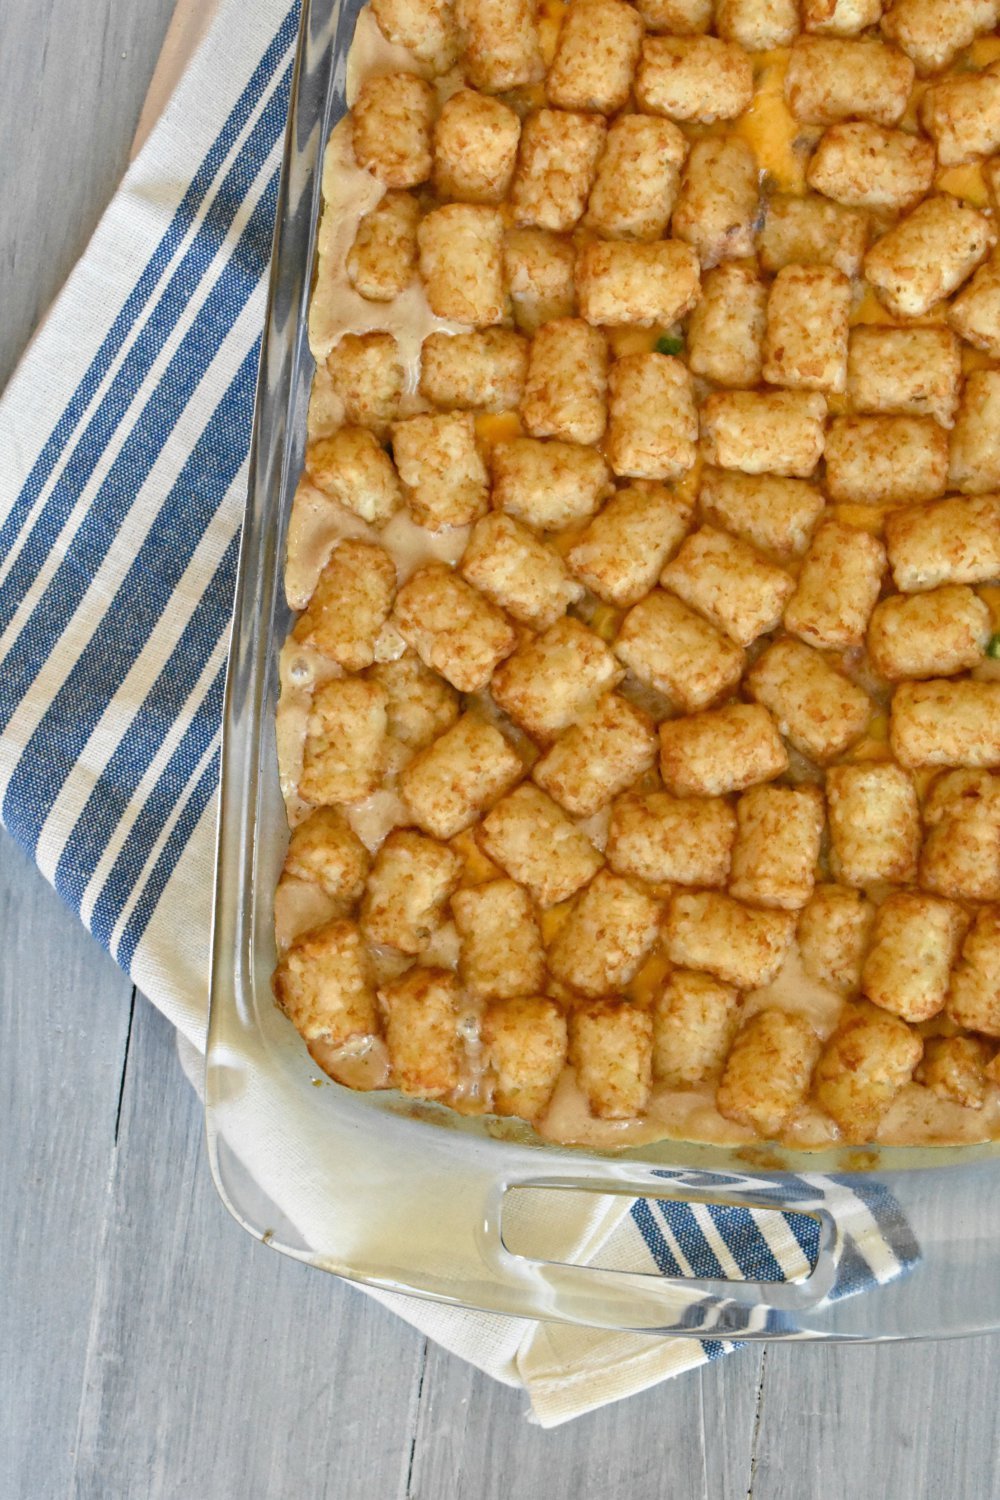 Super easy and Cheesy tater tot casserole